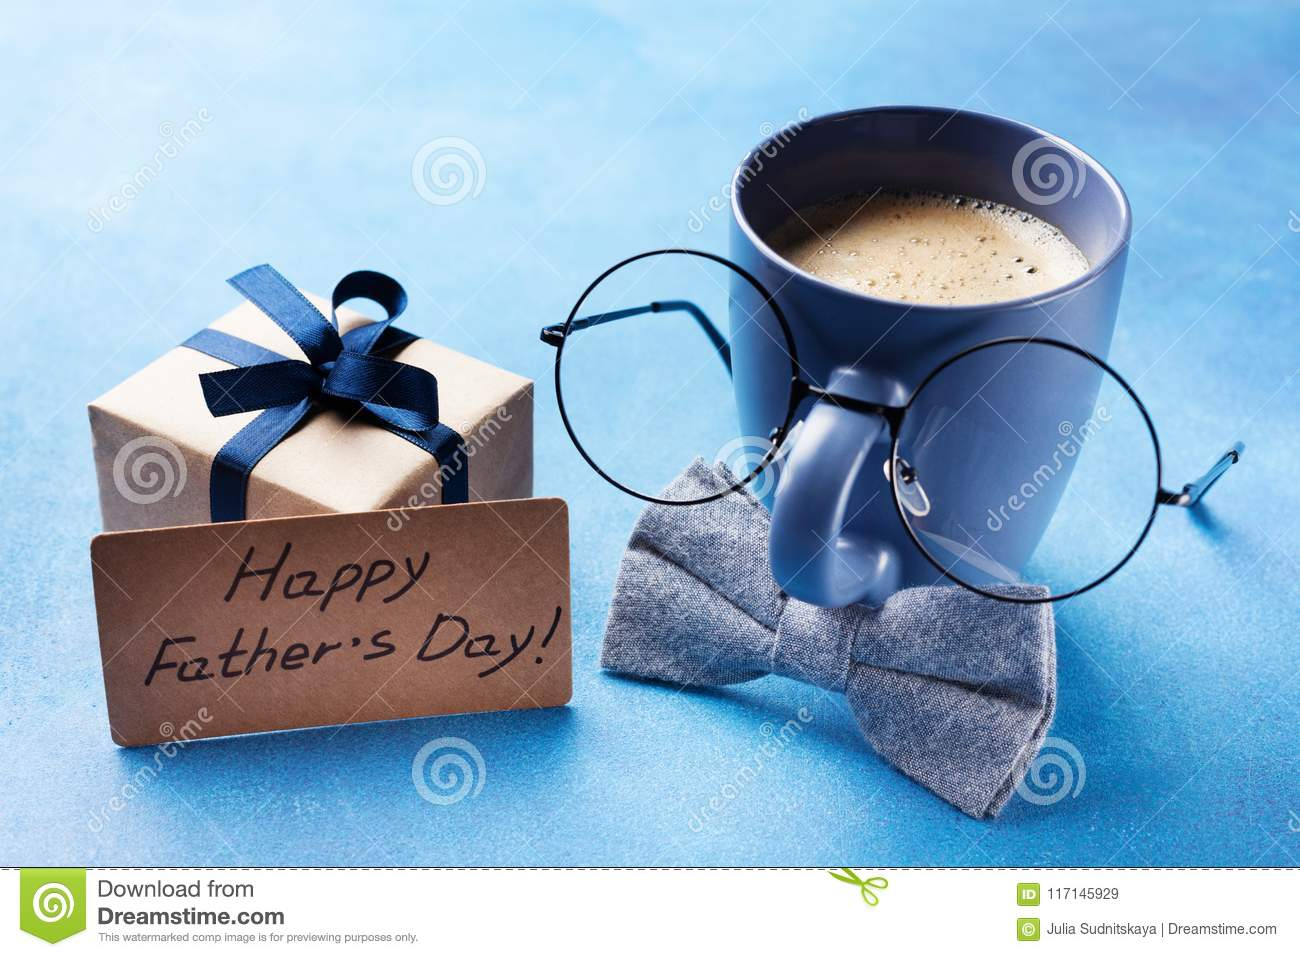 Creative Breakfast On Happy Fathers Day With Gift Box Funny Face From Cup Of Coffee Eyeglasses And Bowtie Stock Image Image Of Drink Cappuccino 117145929